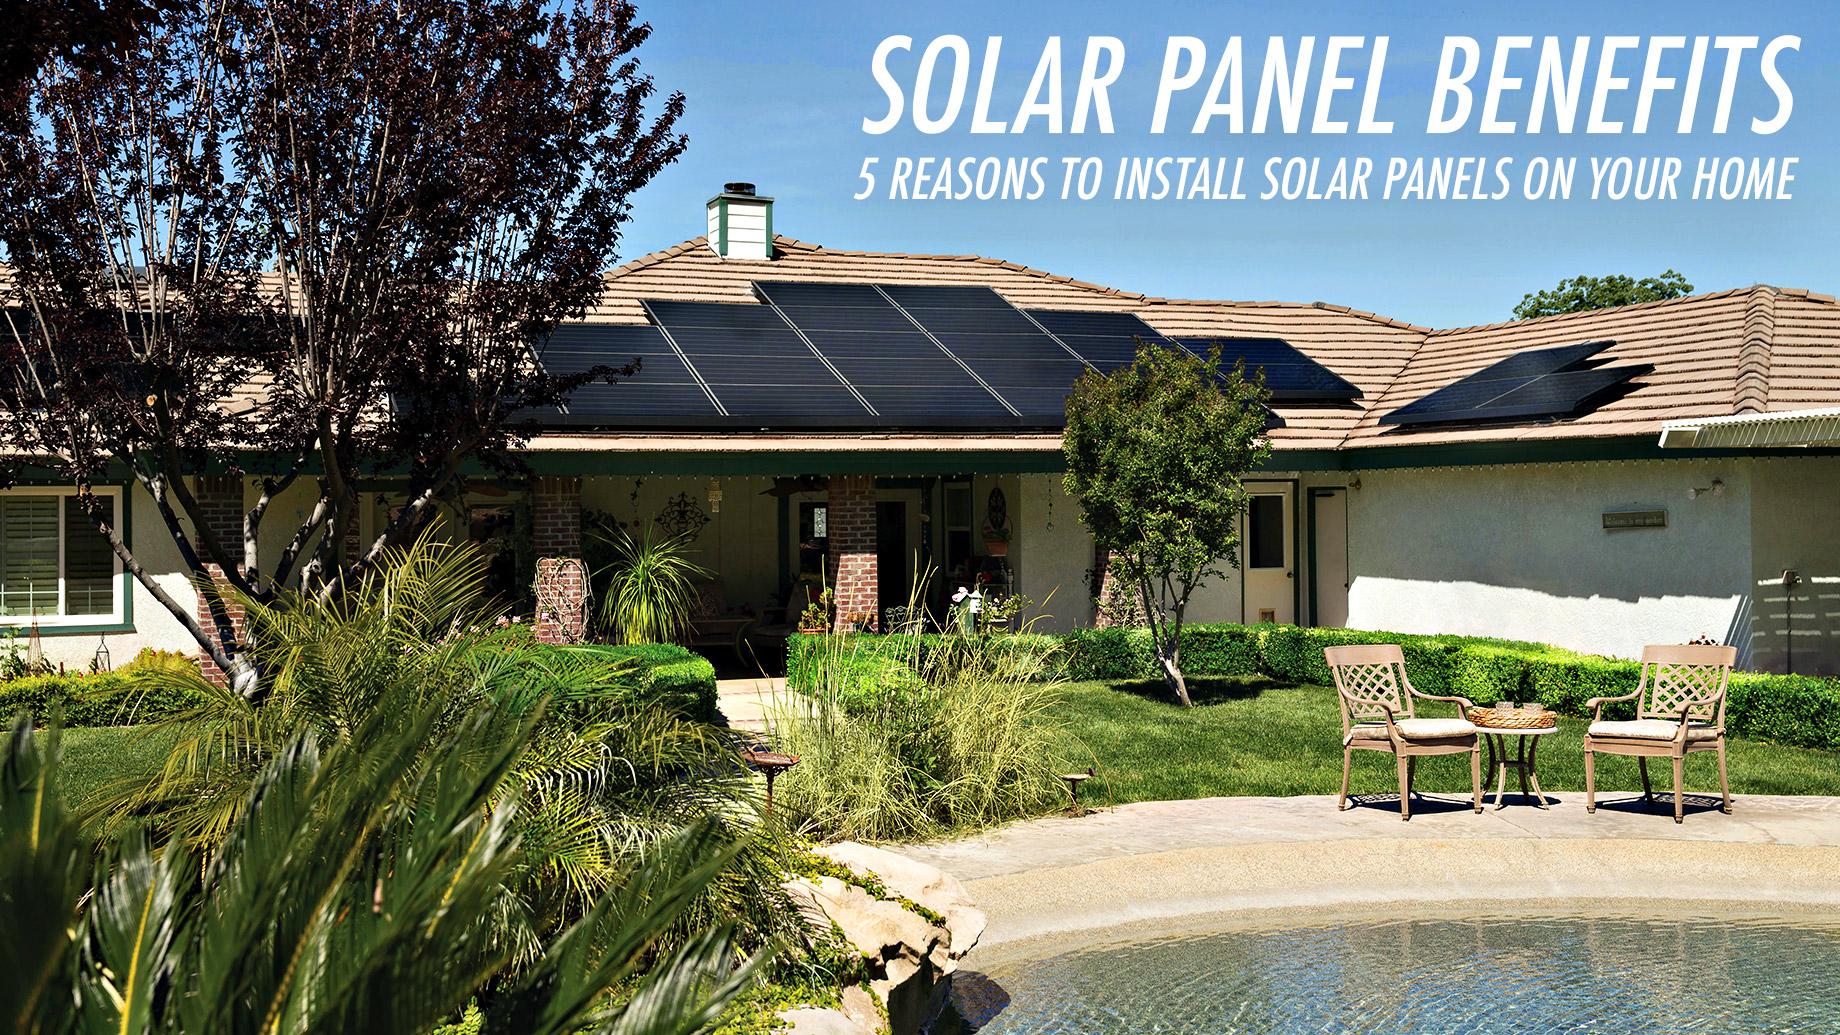 Solar Panel Benefits - 5 Reasons to Install Solar Panels on Your Home